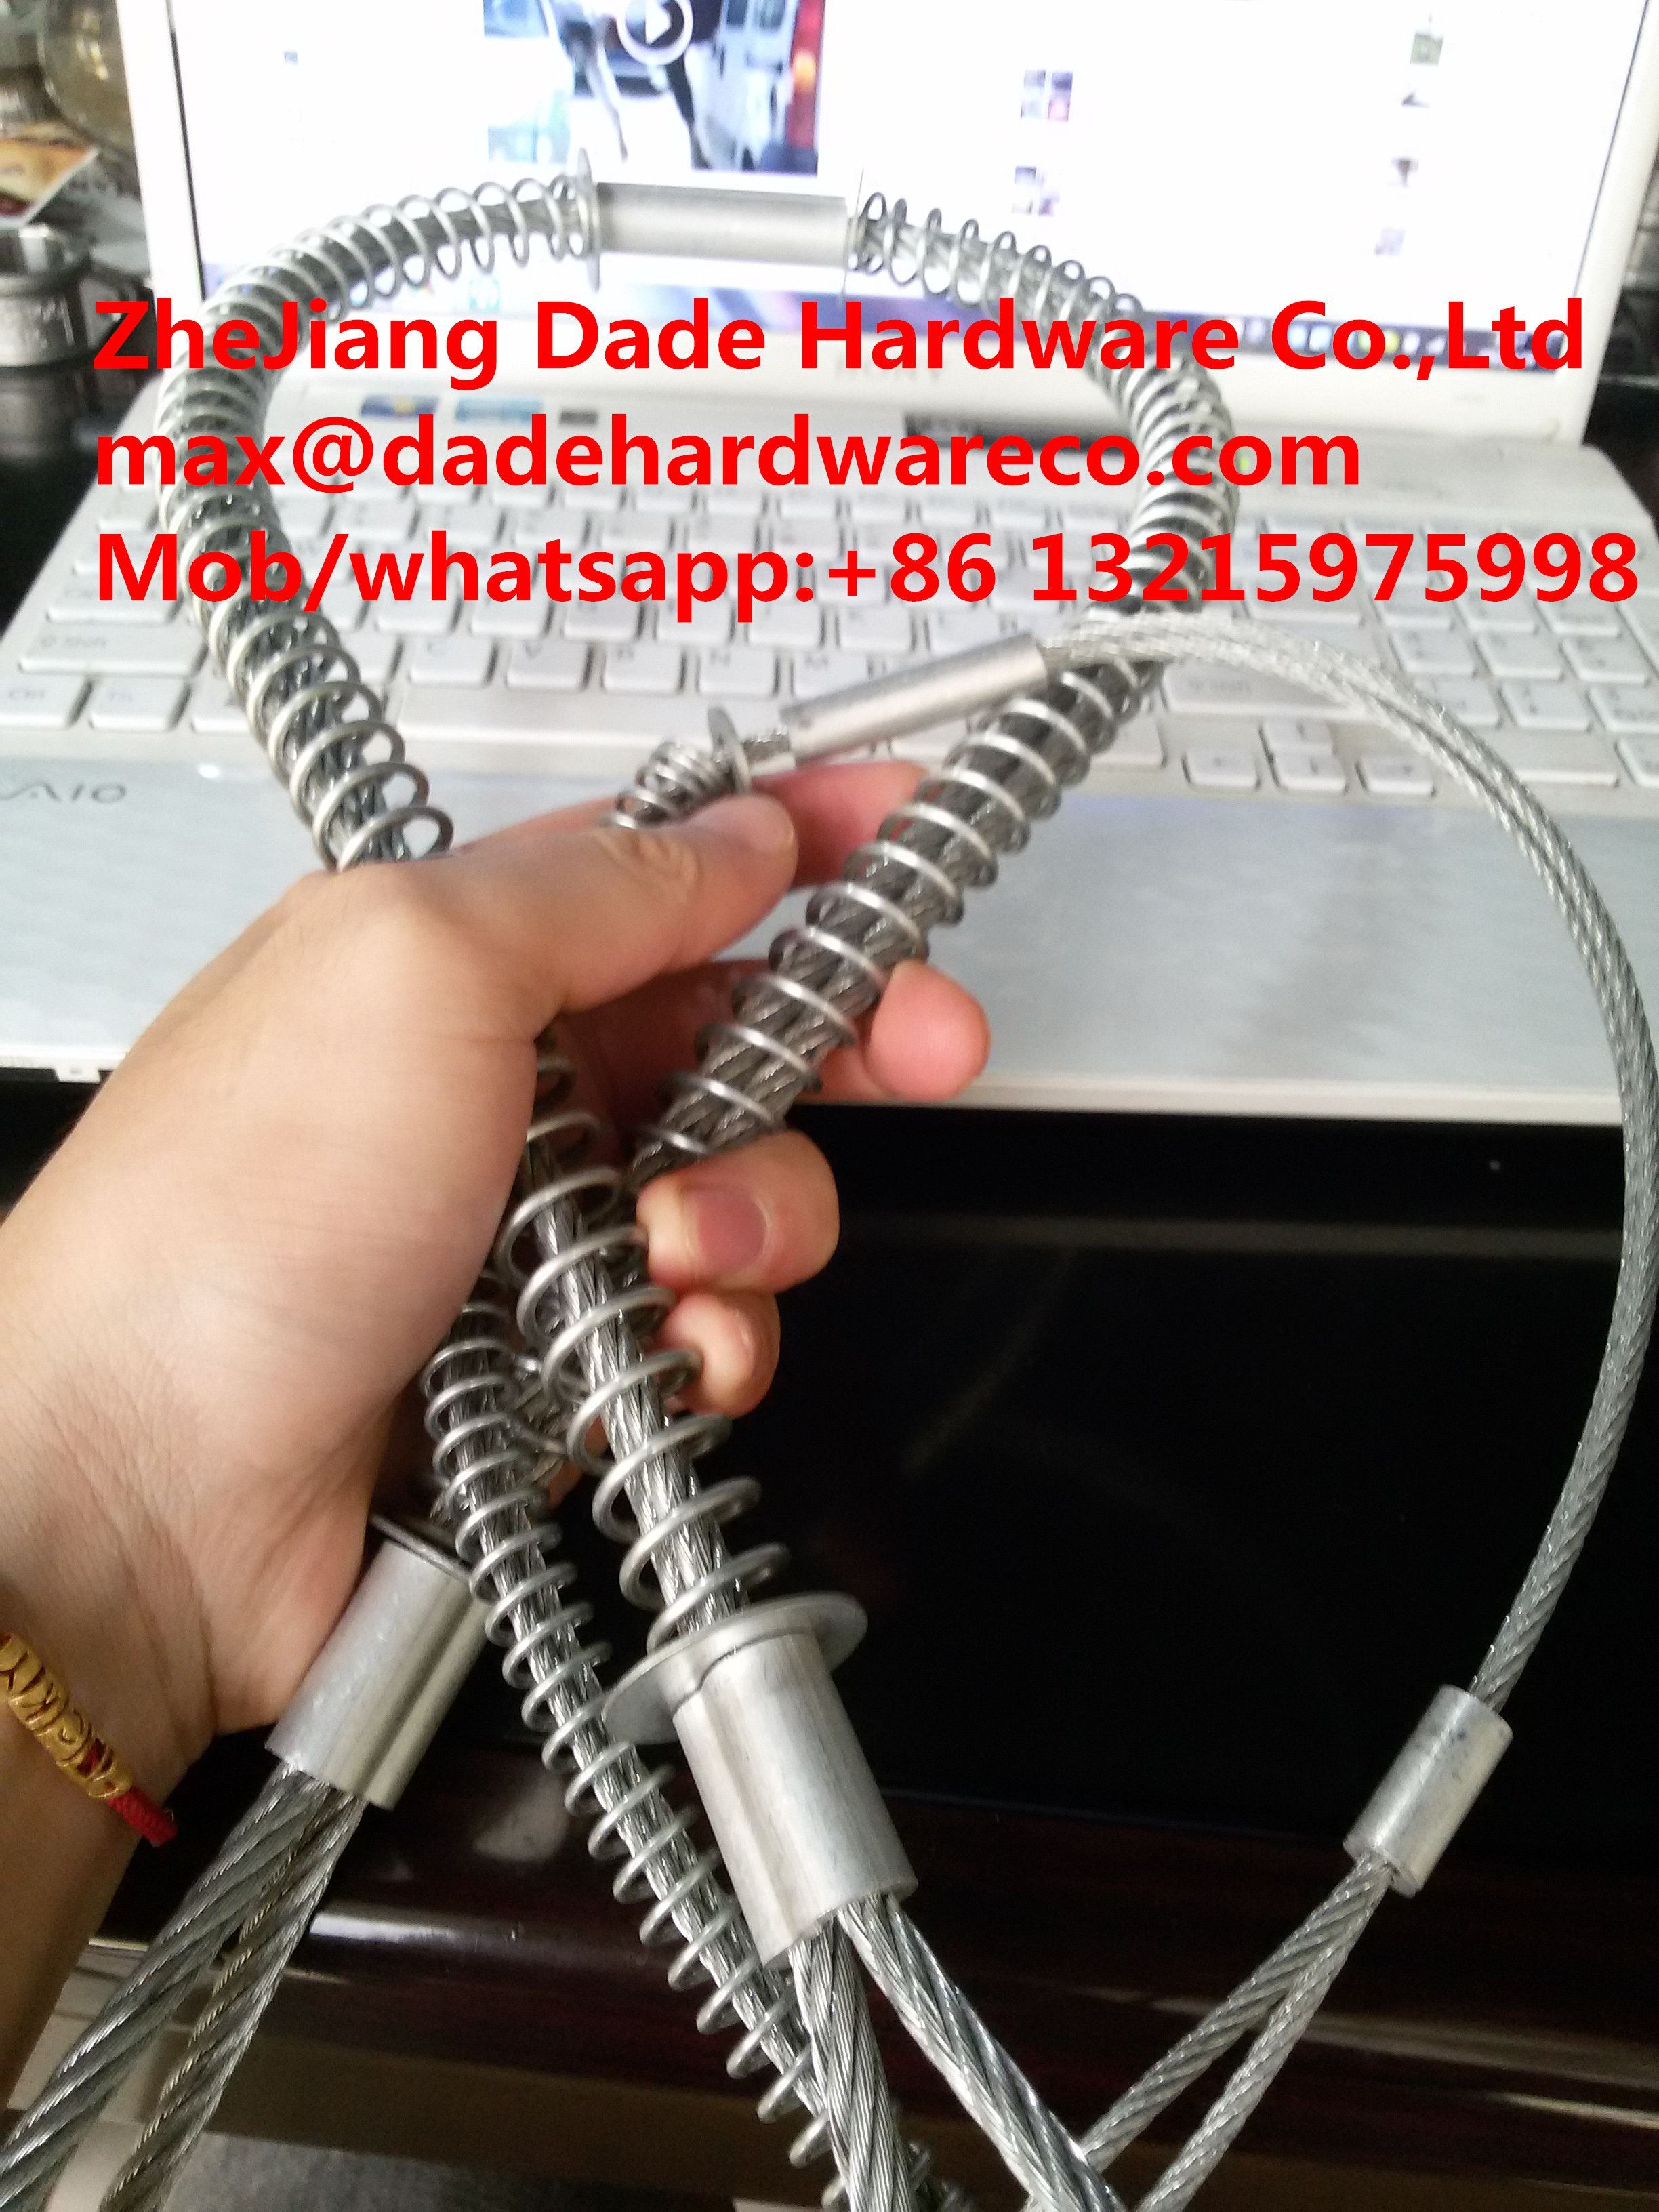 Stainless Steel Whipcheck Safety Cable Whipcheck Cable De Seguridad Size 1 8 3 16 1 4 5 16 3 8 Length 20 1 2 Zhejiang Steel Stainless Steel